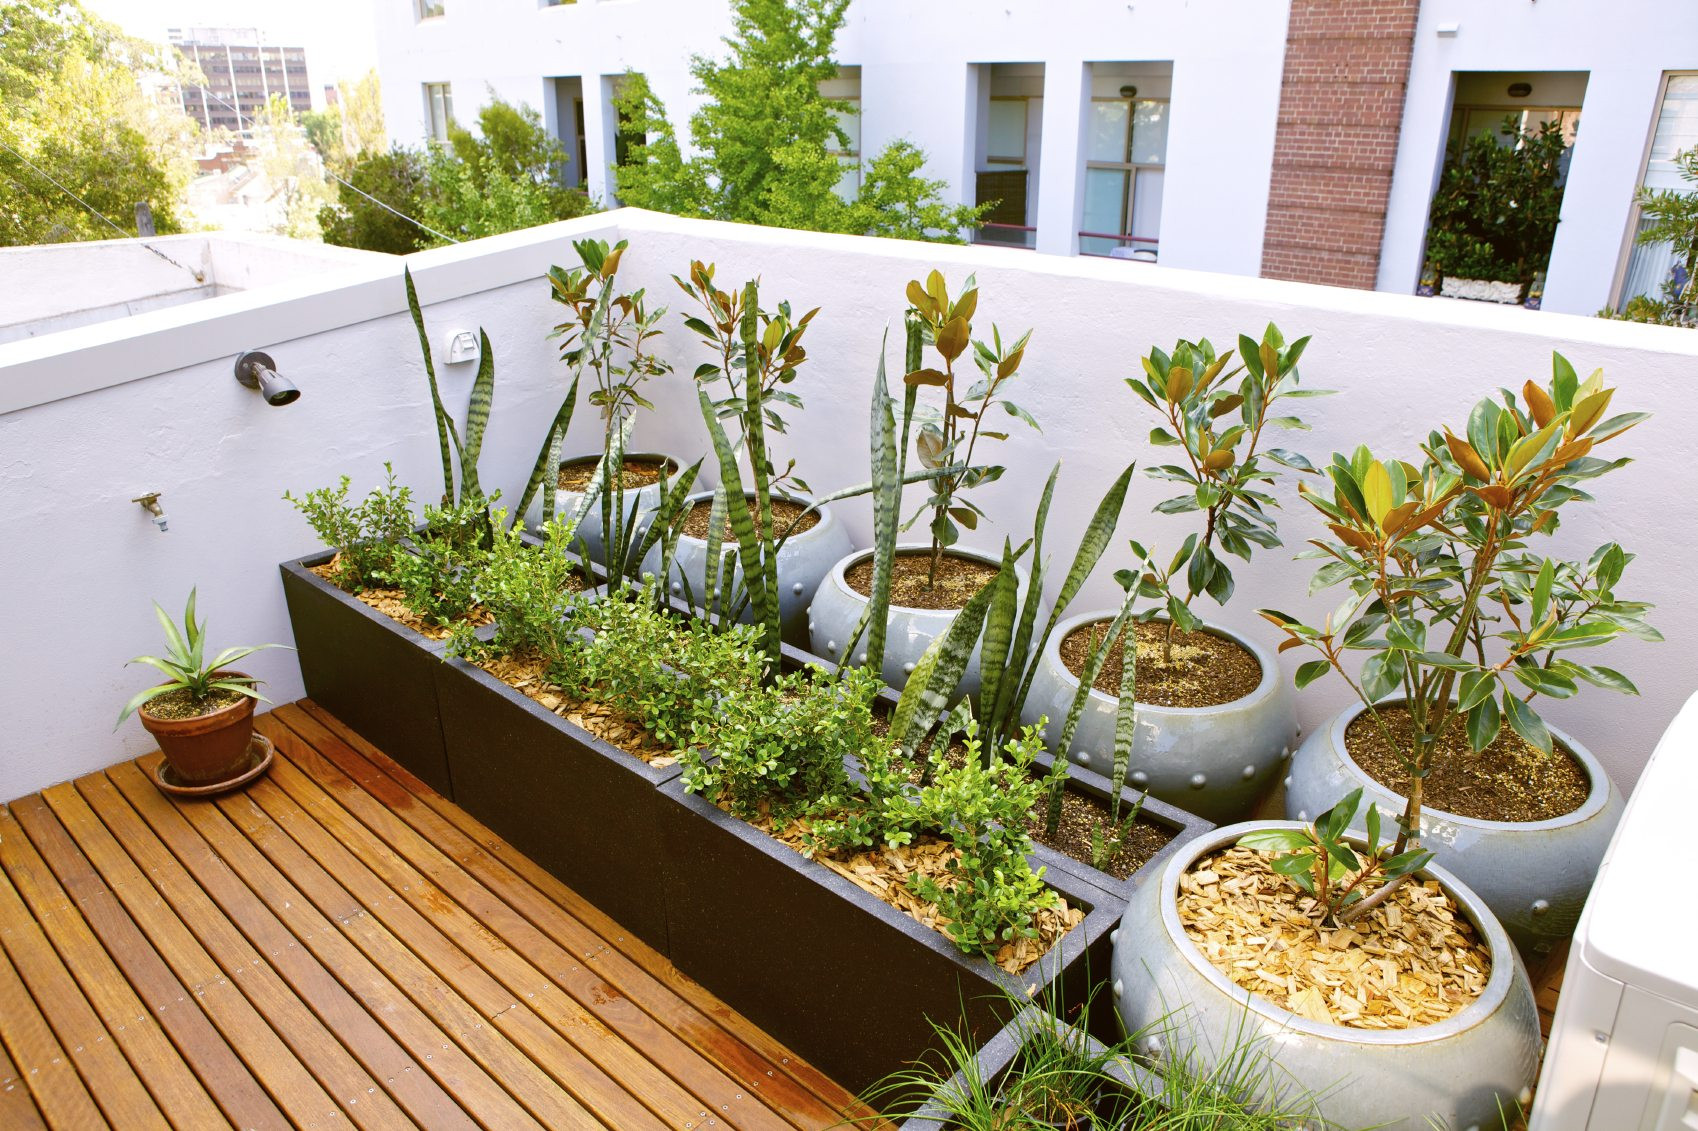 Rooftop Garden Rooftop Gardening for City Dwellers Gardening Know How